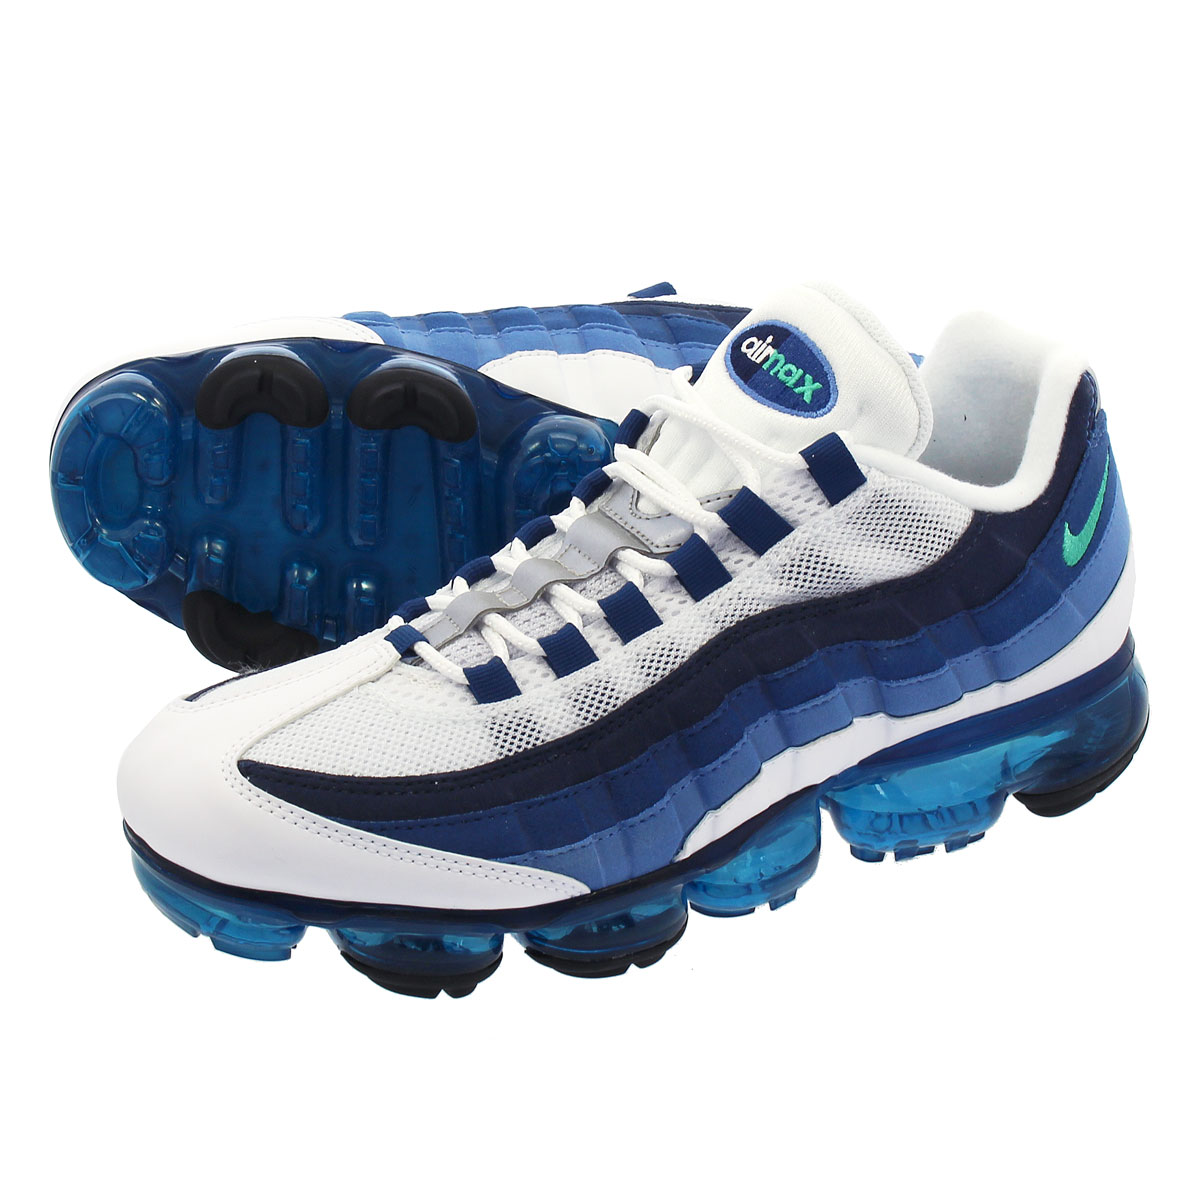 Nike Air Max 95 White French Blue Where To Buy 554970